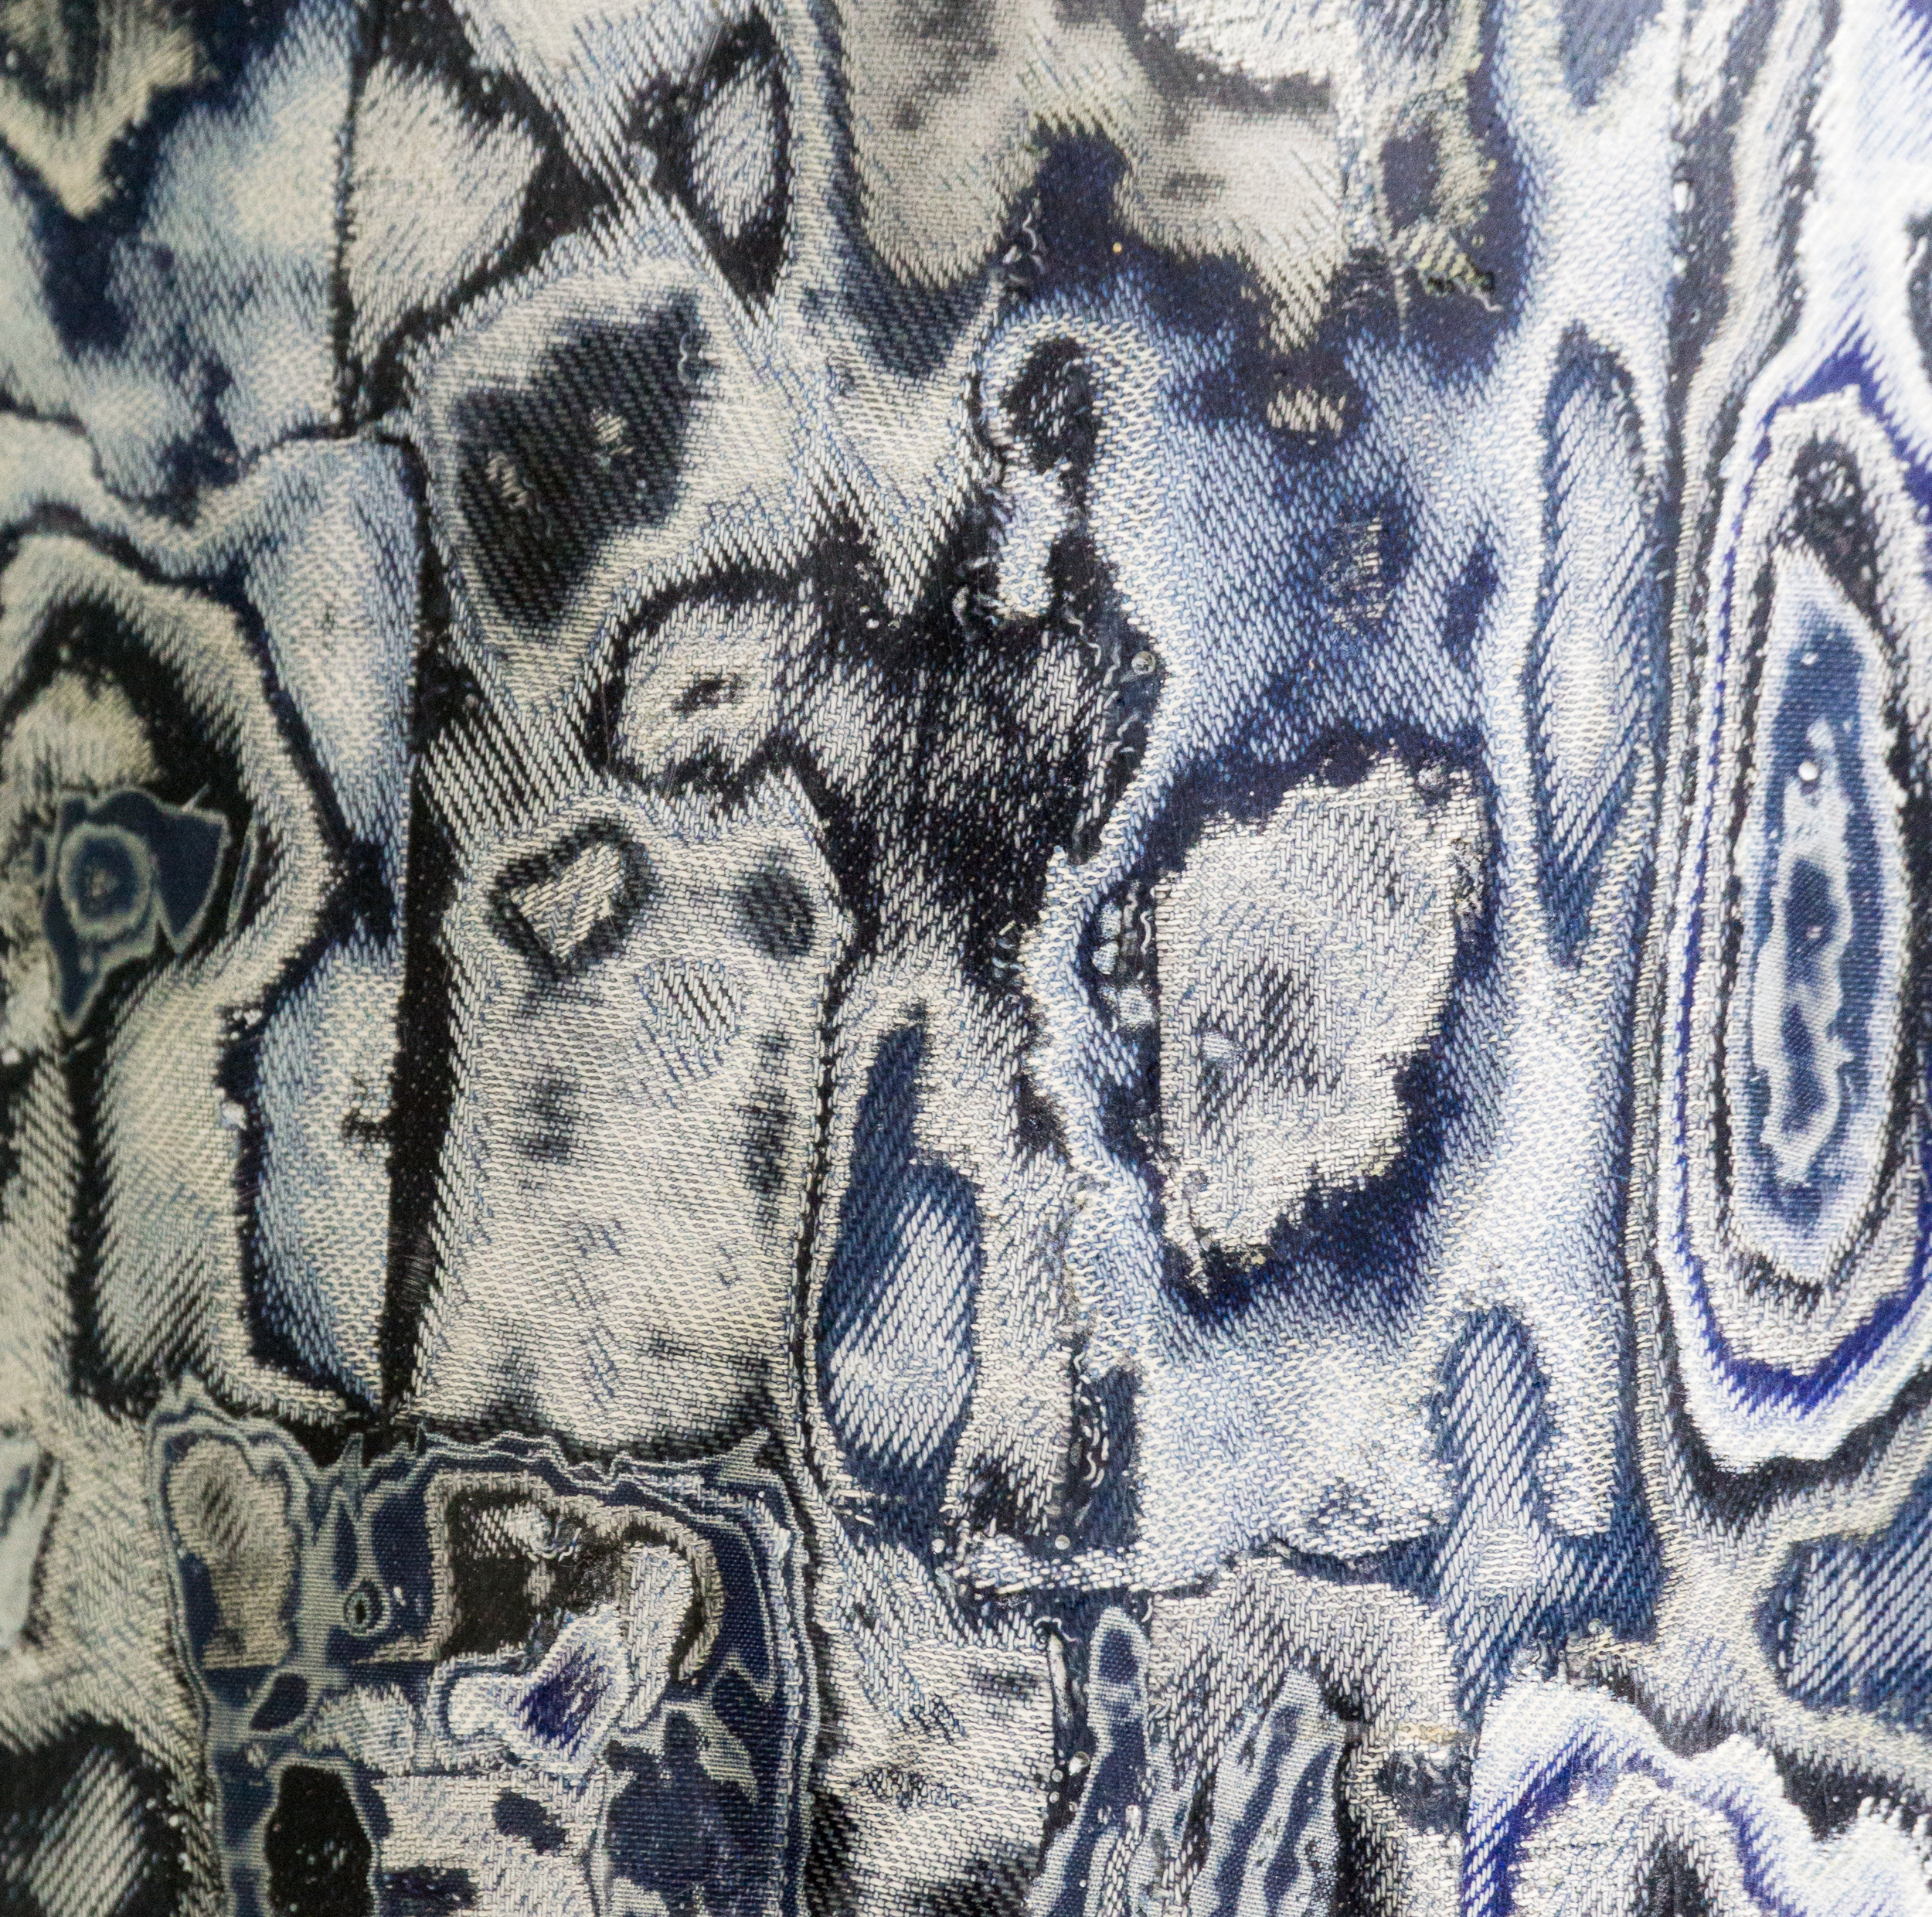 Bahia Denim by Sophie Rowley Waste material: Post-industrial denim waste    Bahia Denim is created using production waste from the fashion industry. These textile offcuts are layered, adhered and carved to create intricate patterns. The non-standardized nature of the waste - the variation in size, shade, color and texture make the designs unique. In developing the material by hand endless color combinations can be explored achieving customized and one of a kind designs. The lightweight yet durable properties of the material allow for diverse applications in furniture, wall paneling or interior surfaces.   sophierowley.com